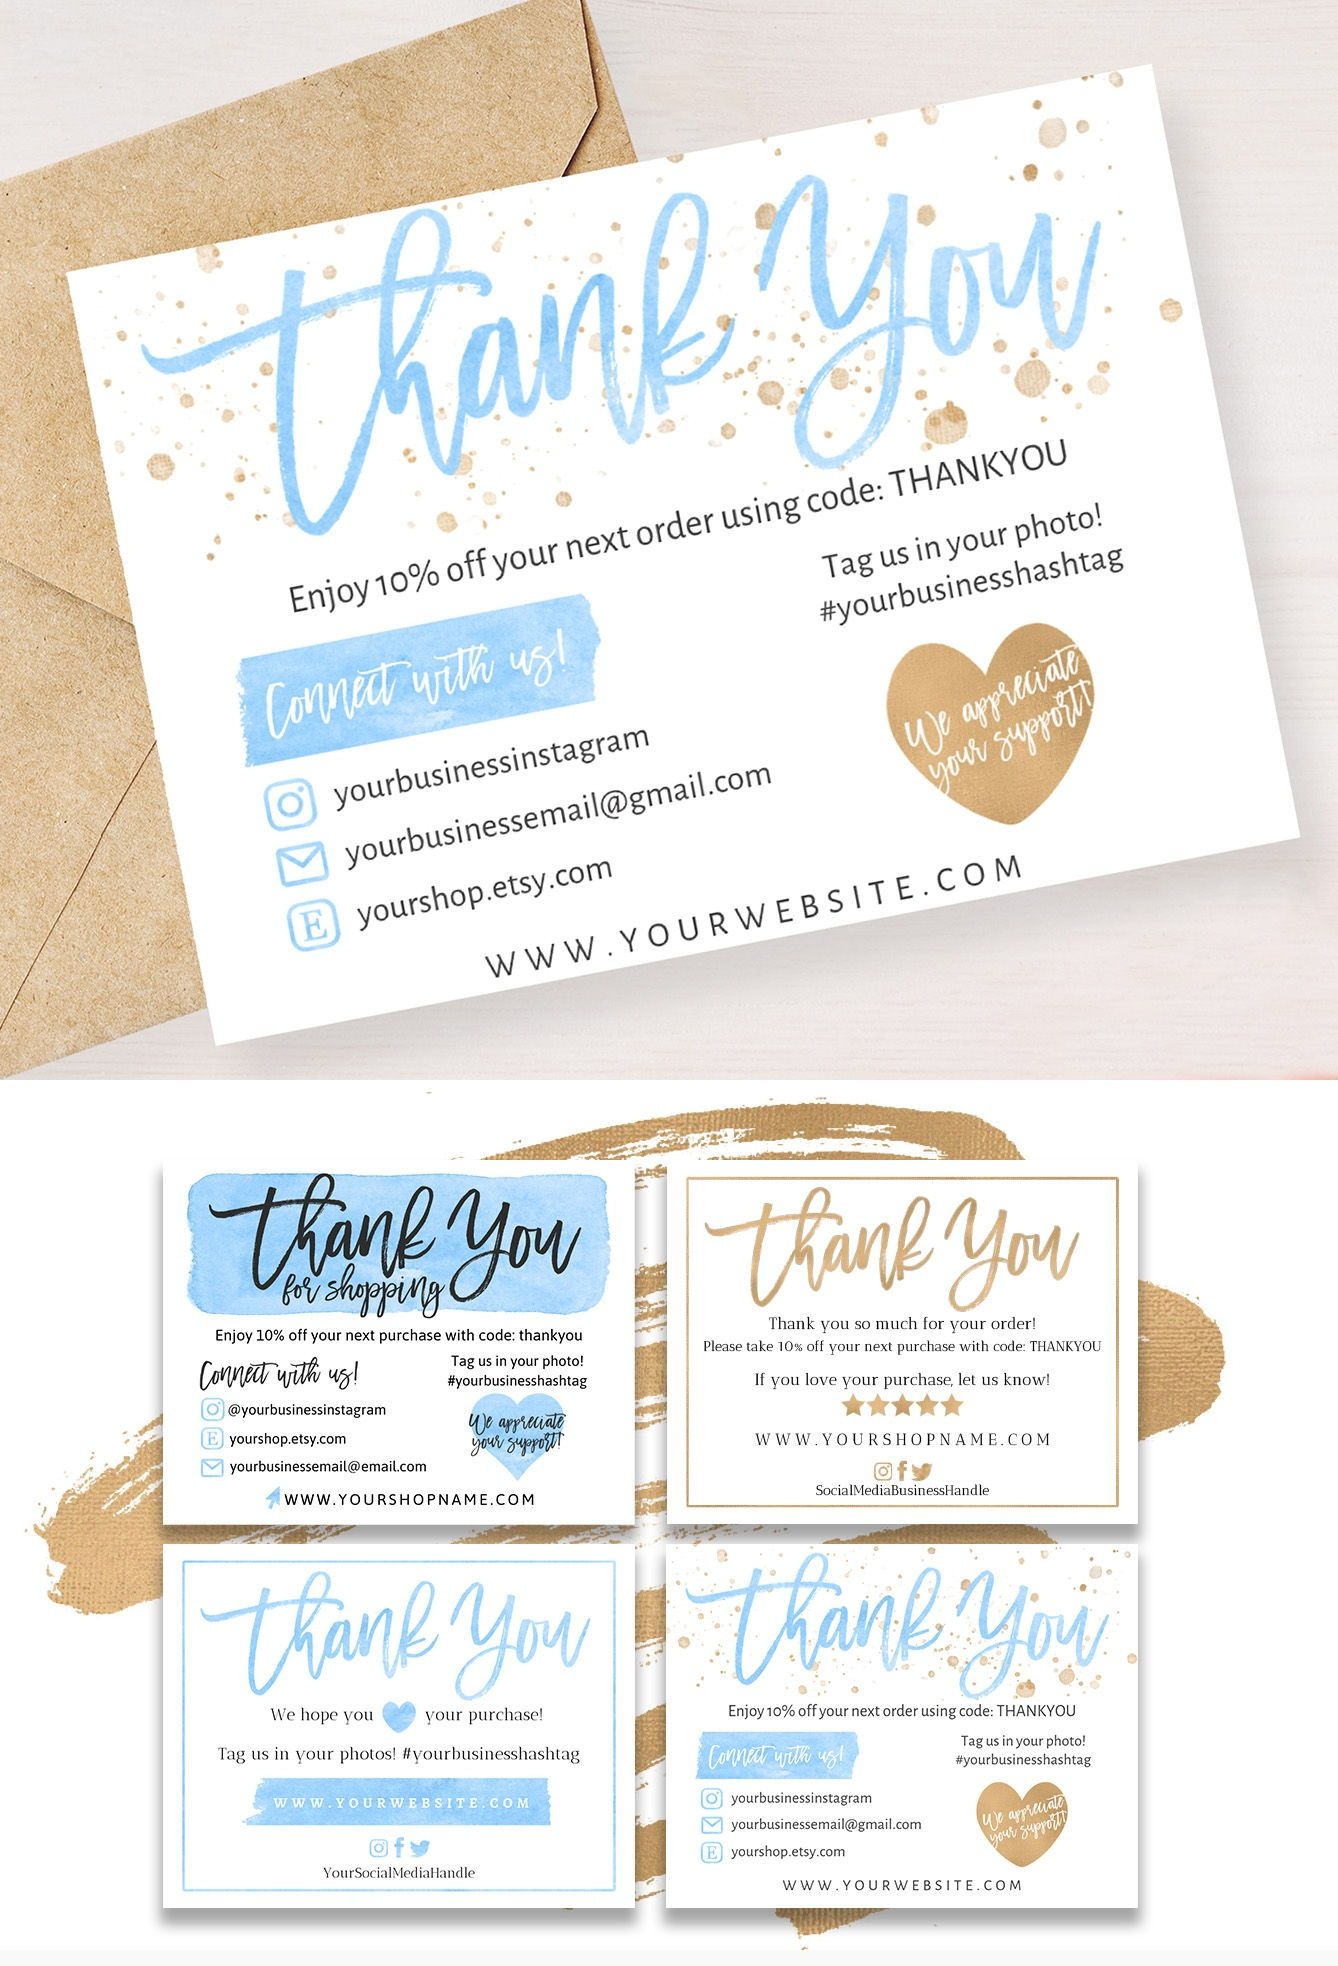 4 Diy Templates Thank You For Your Order Card Blue Gold Etsy In 2021 Business Thank You Notes Thank You Card Template Thank You Cards